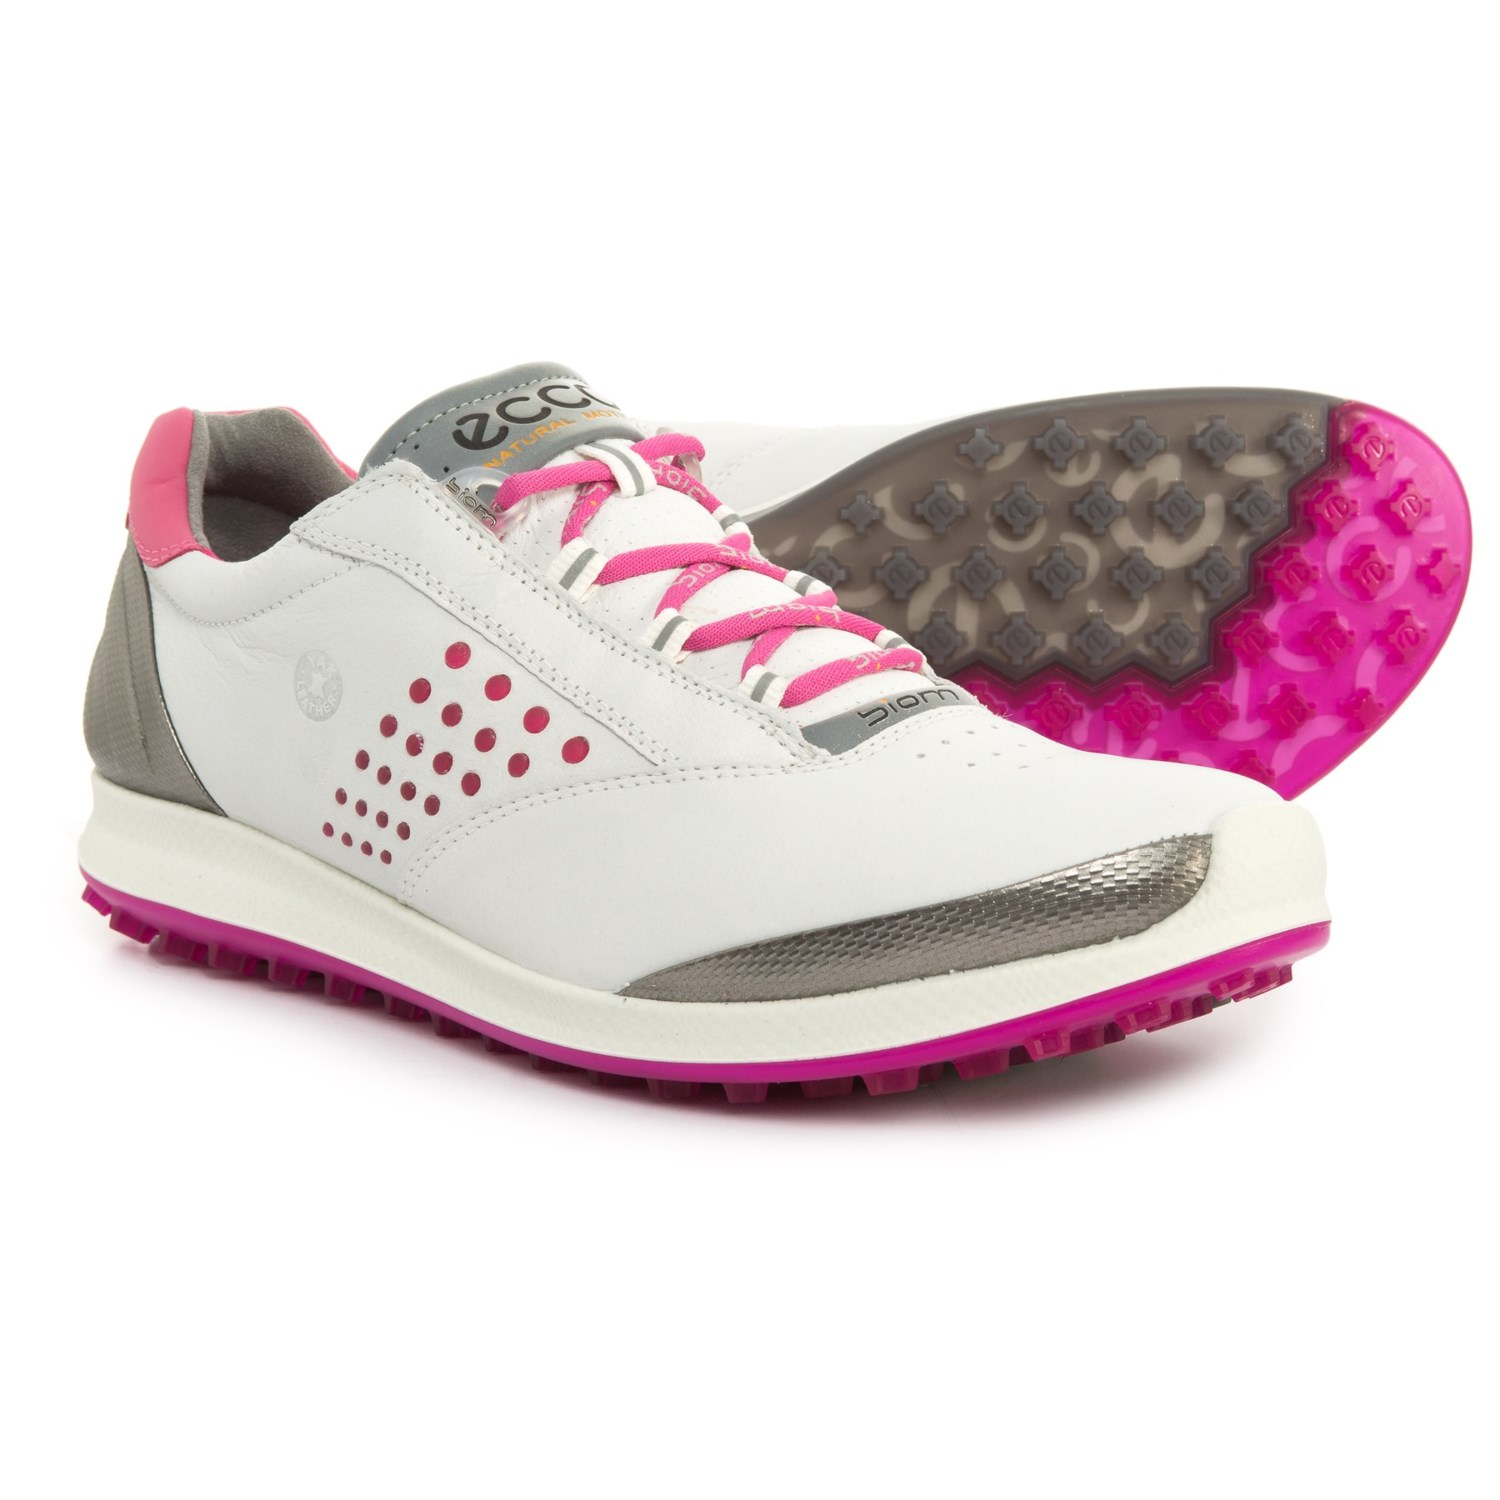 ECCO BIOM Hybrid 2 Golf Shoes (For Women) in White/Candy